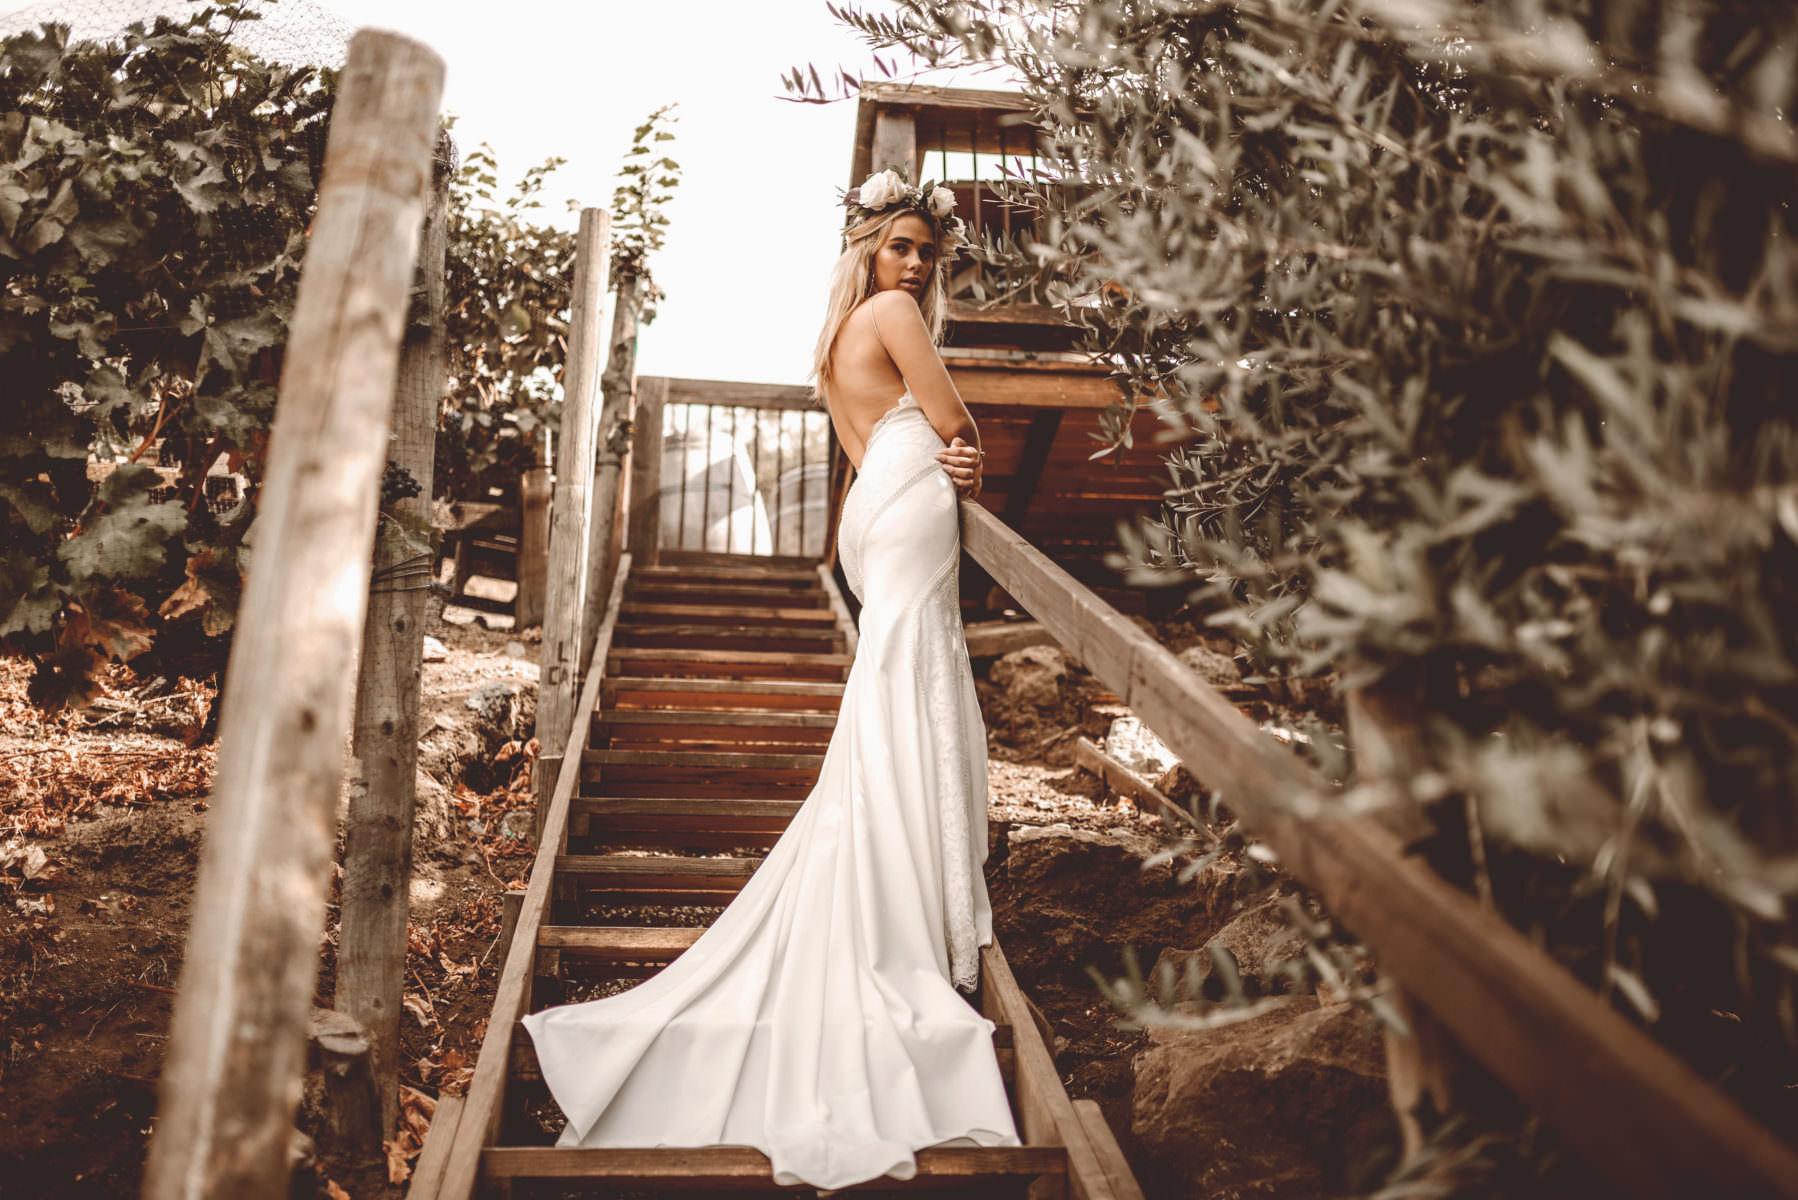 Wyatt wedding dress lovers society paperswn bride wellington christchurch